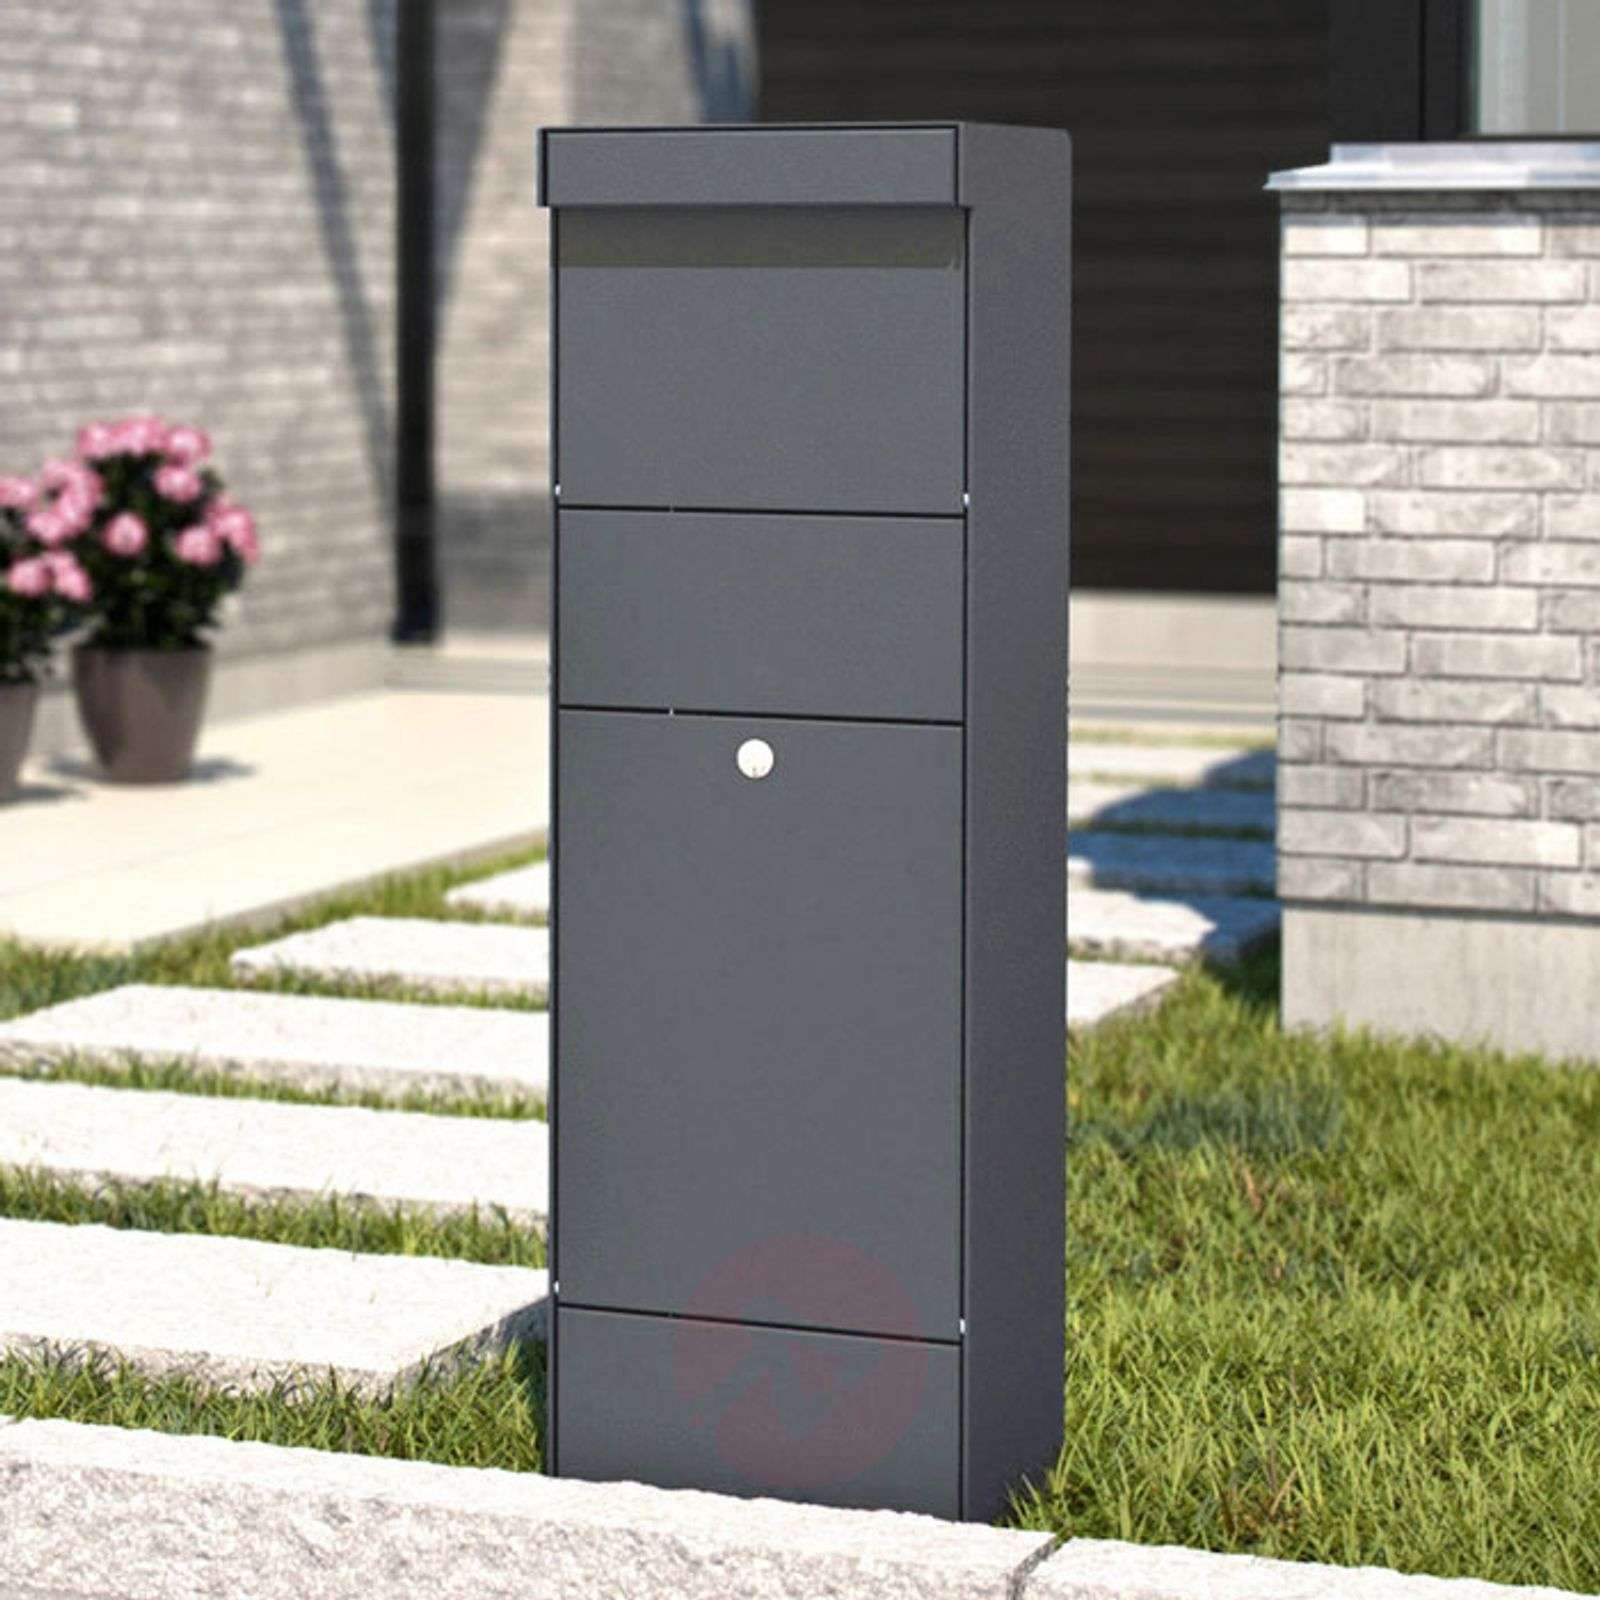 Stand letterbox Parcel anthracite-1045224-01